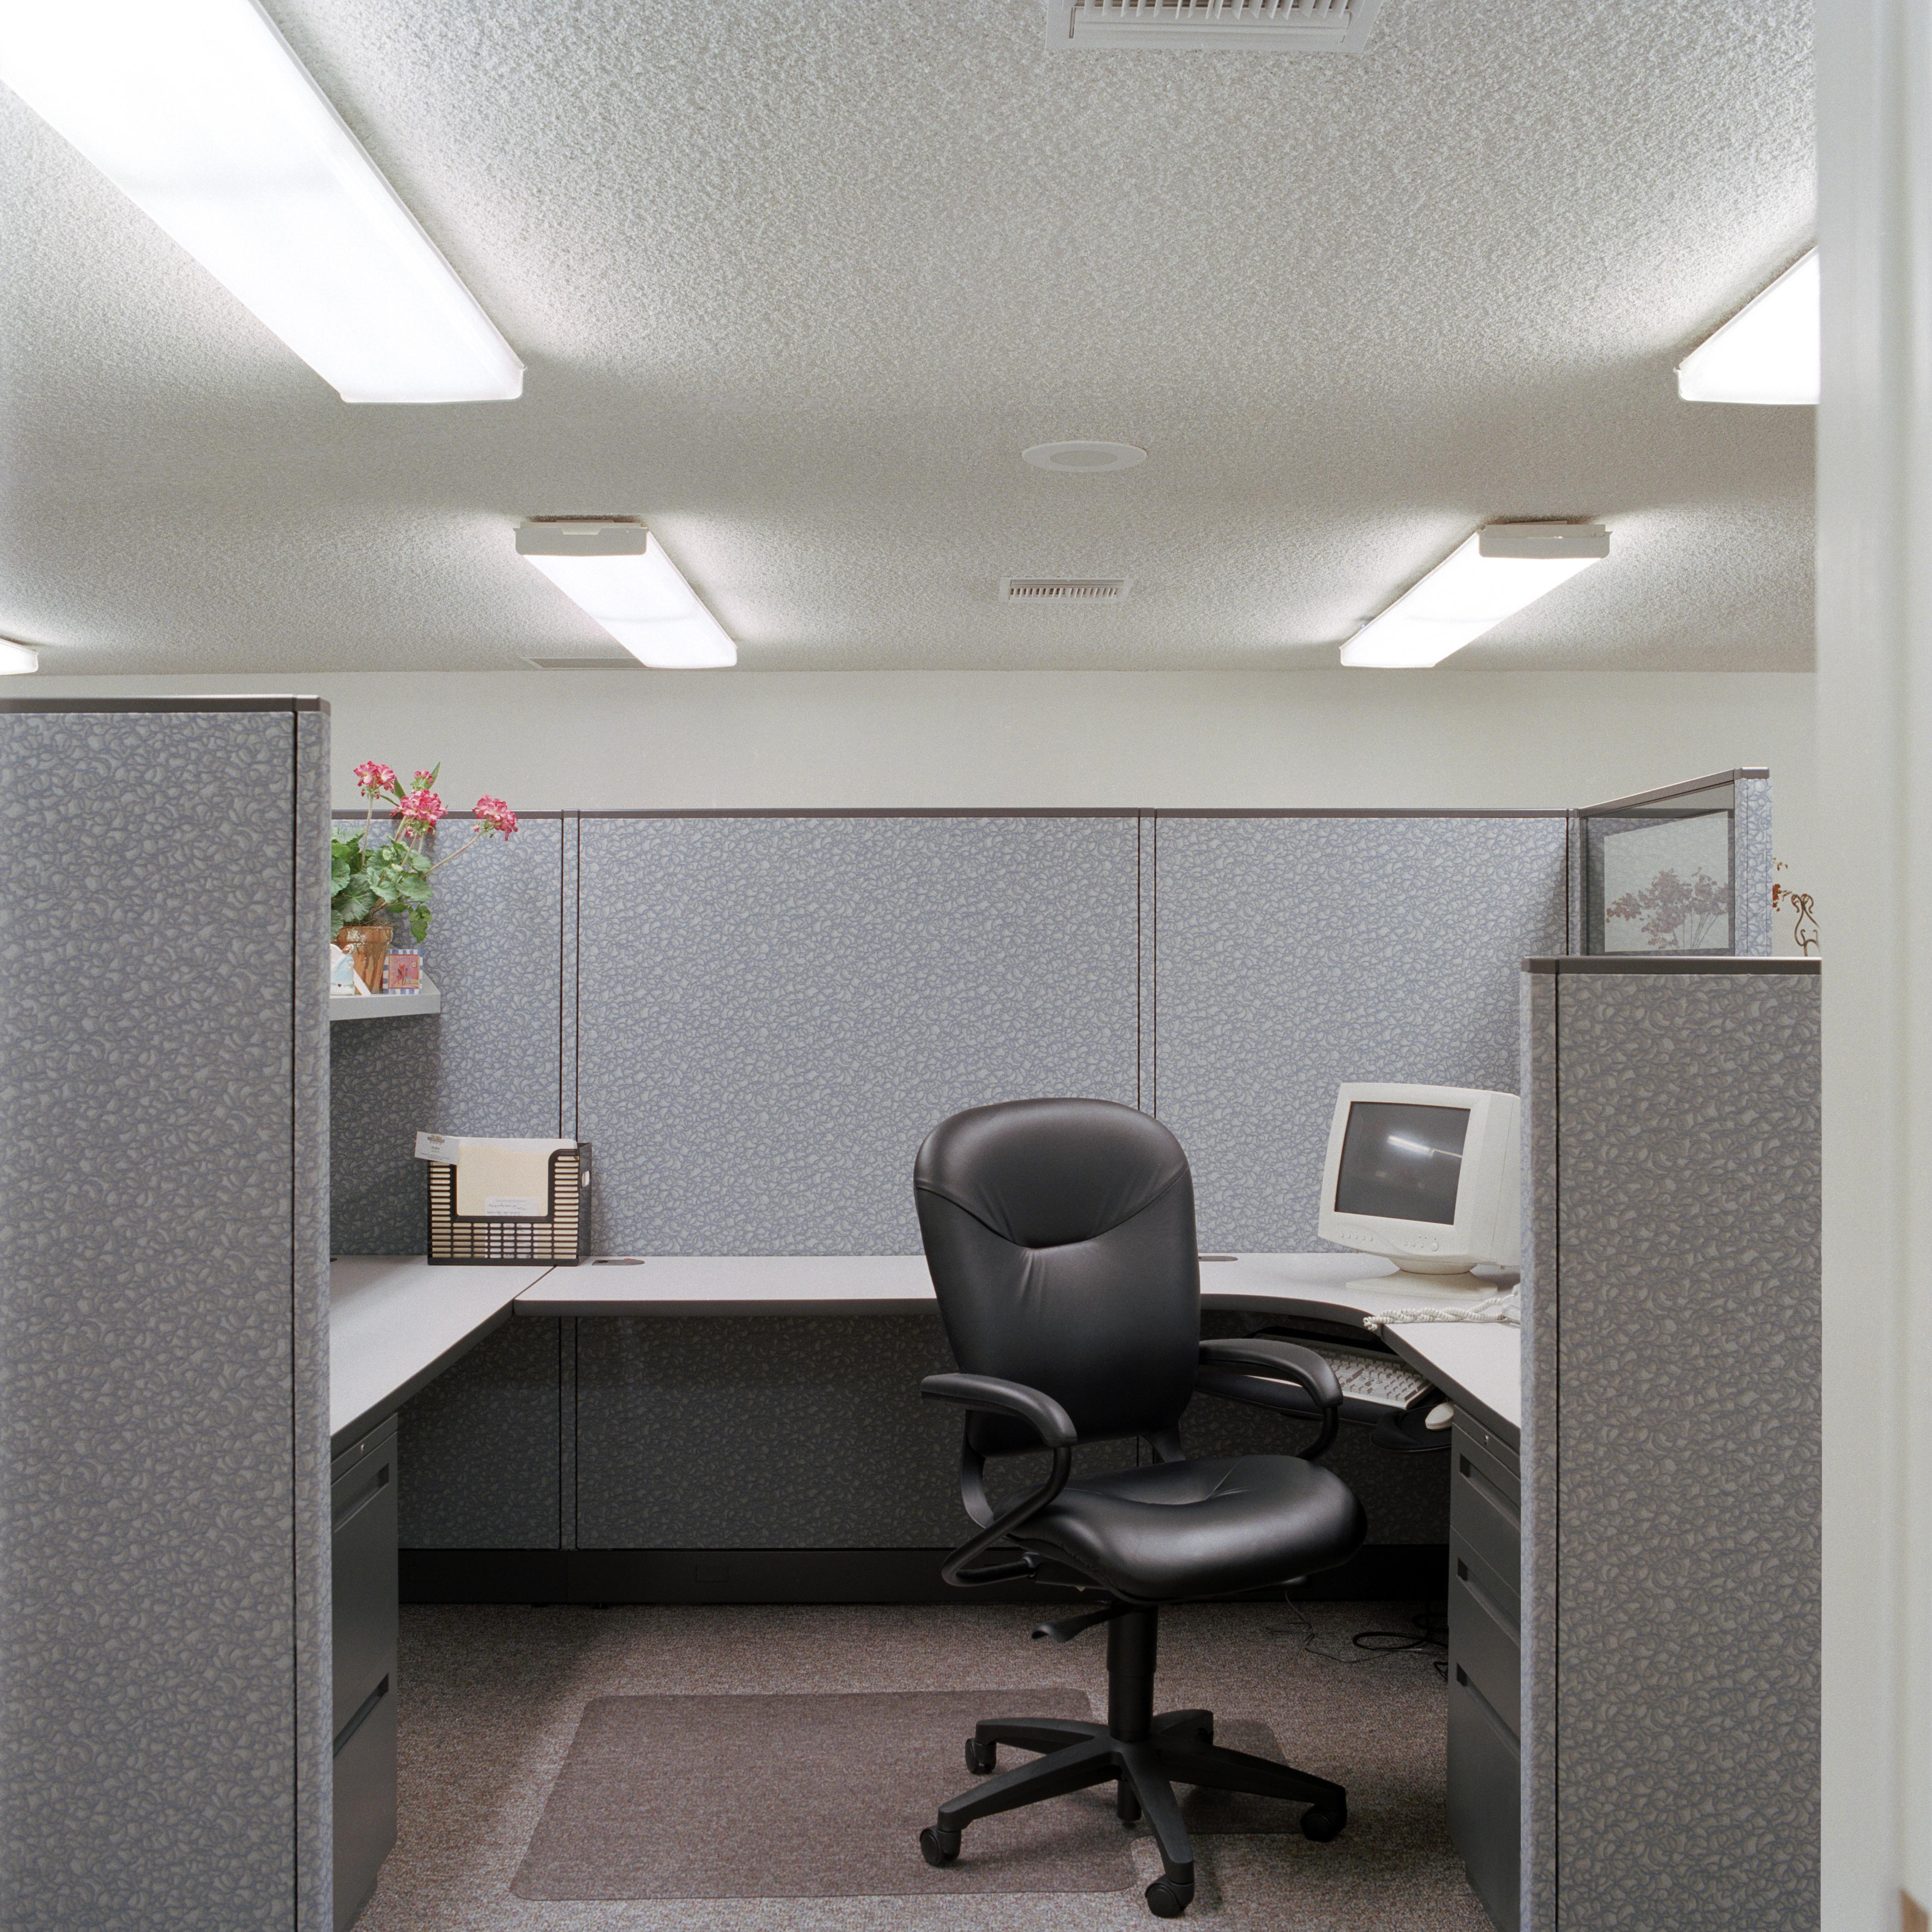 Computer and chair in cubicle